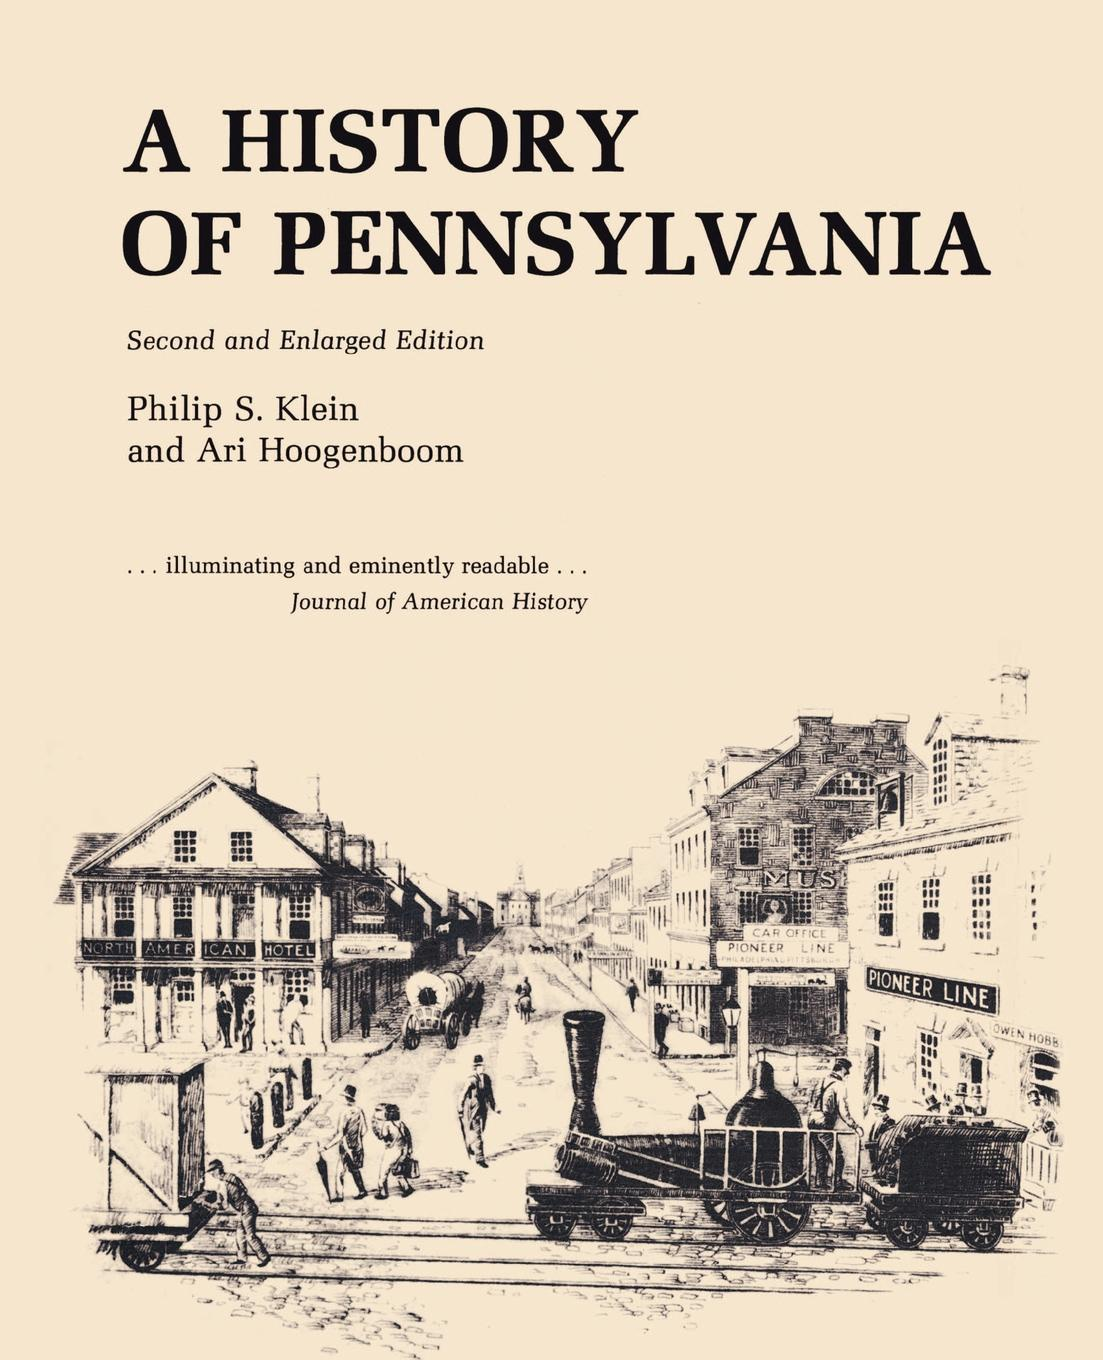 Philip S. Klein, Ari Hoogenboom A History of Pennsylvania